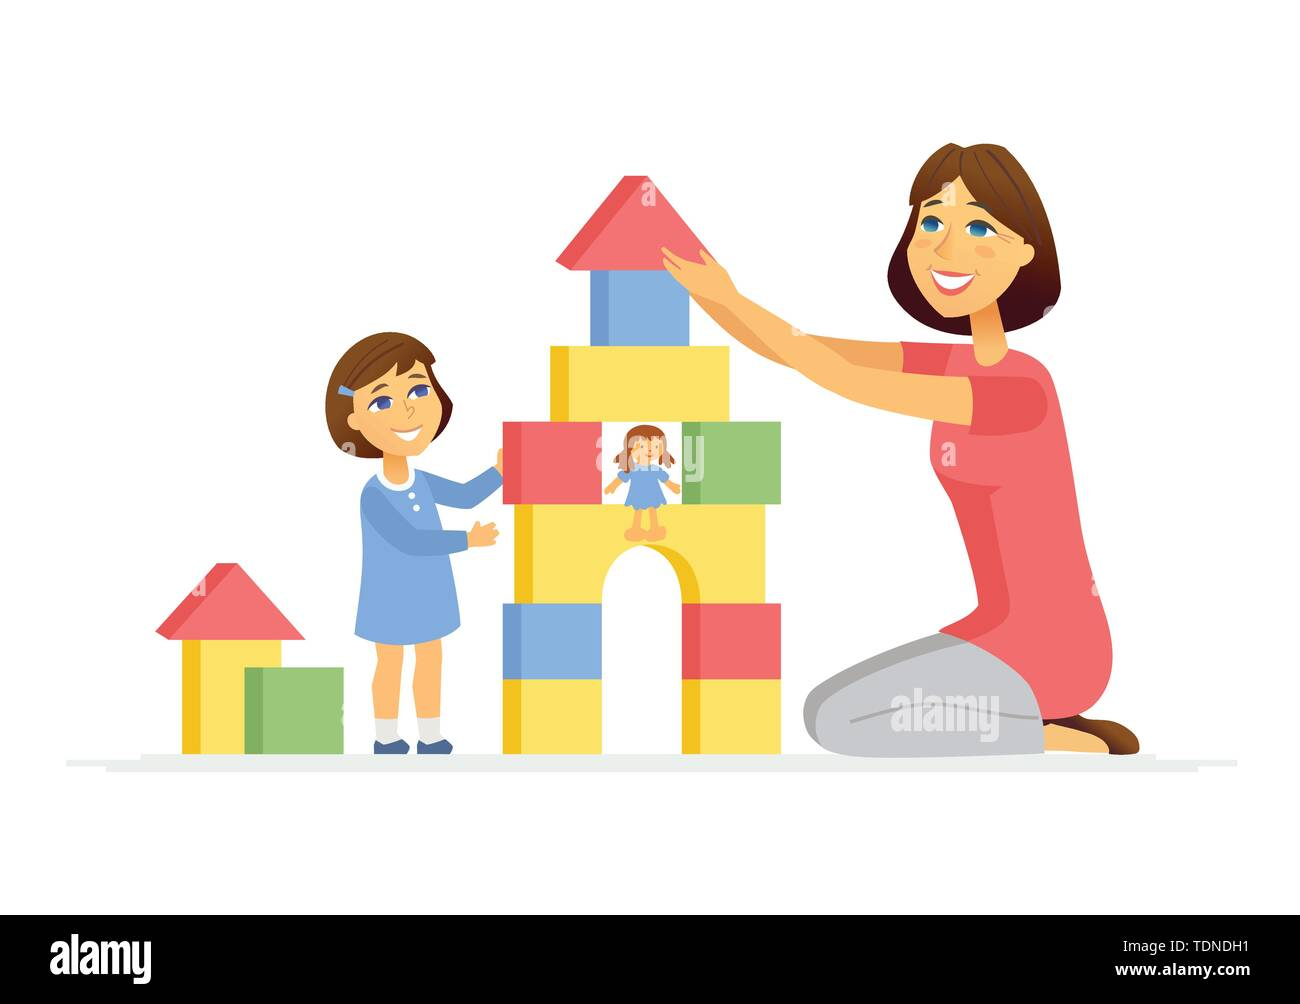 Mother and daughter playing - cartoon people characters illustration isolated on white background. Young woman and her kid building a toy castle, pyra - Stock Image